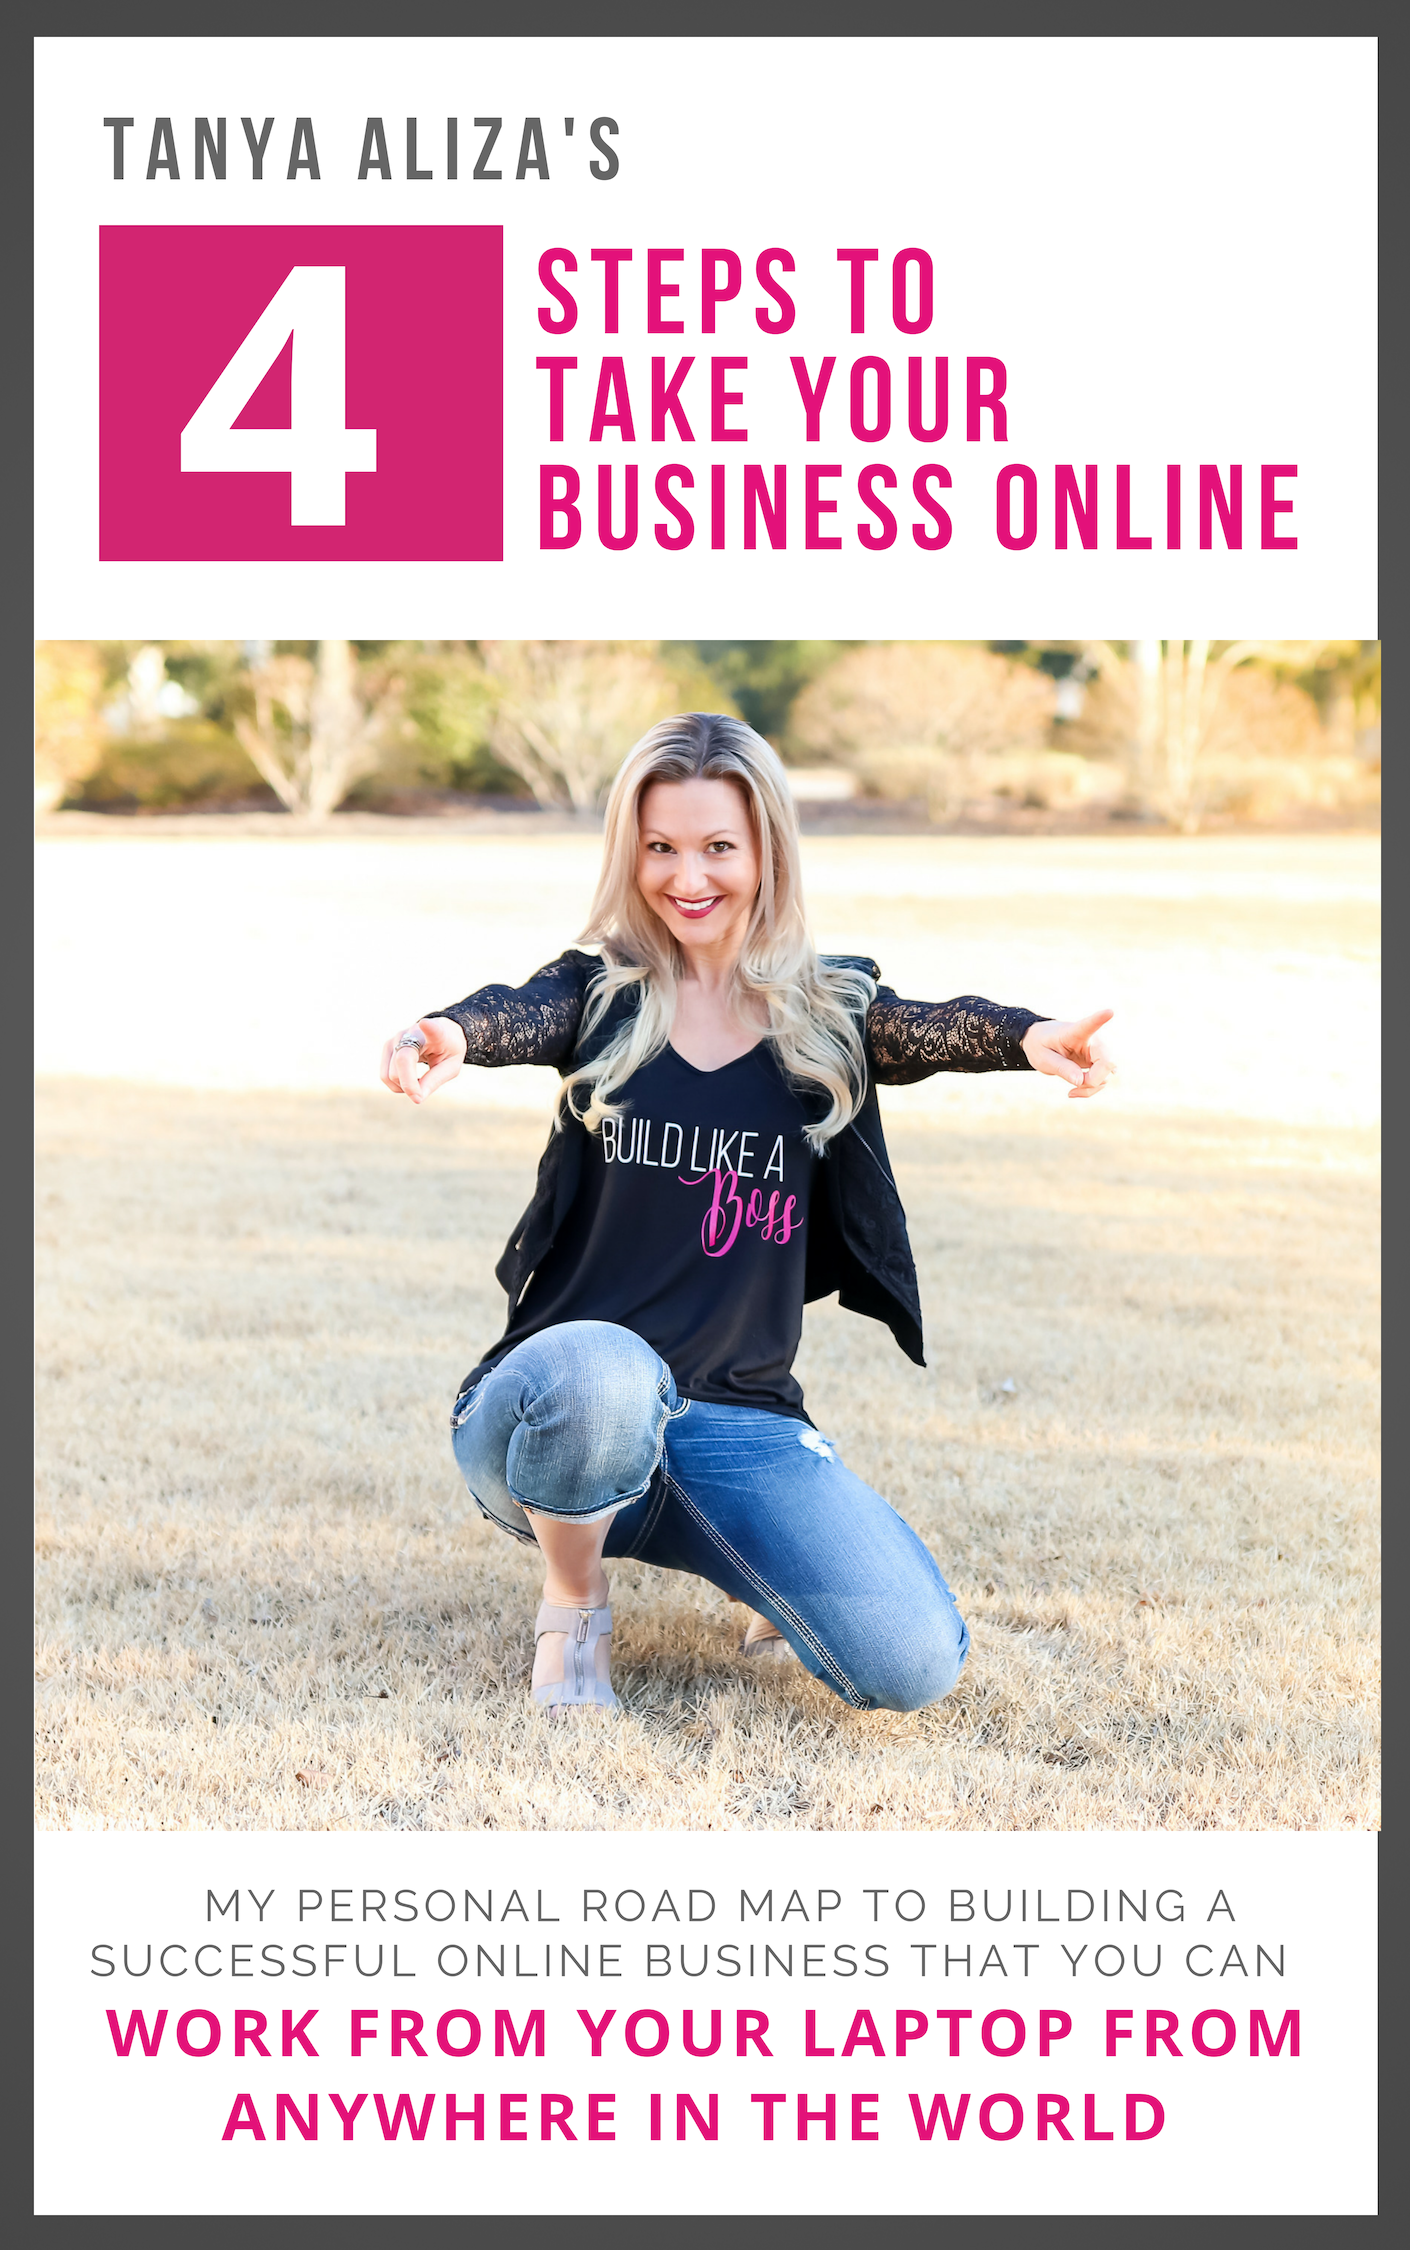 Tanya's 4 Steps To Taking Your Business Online